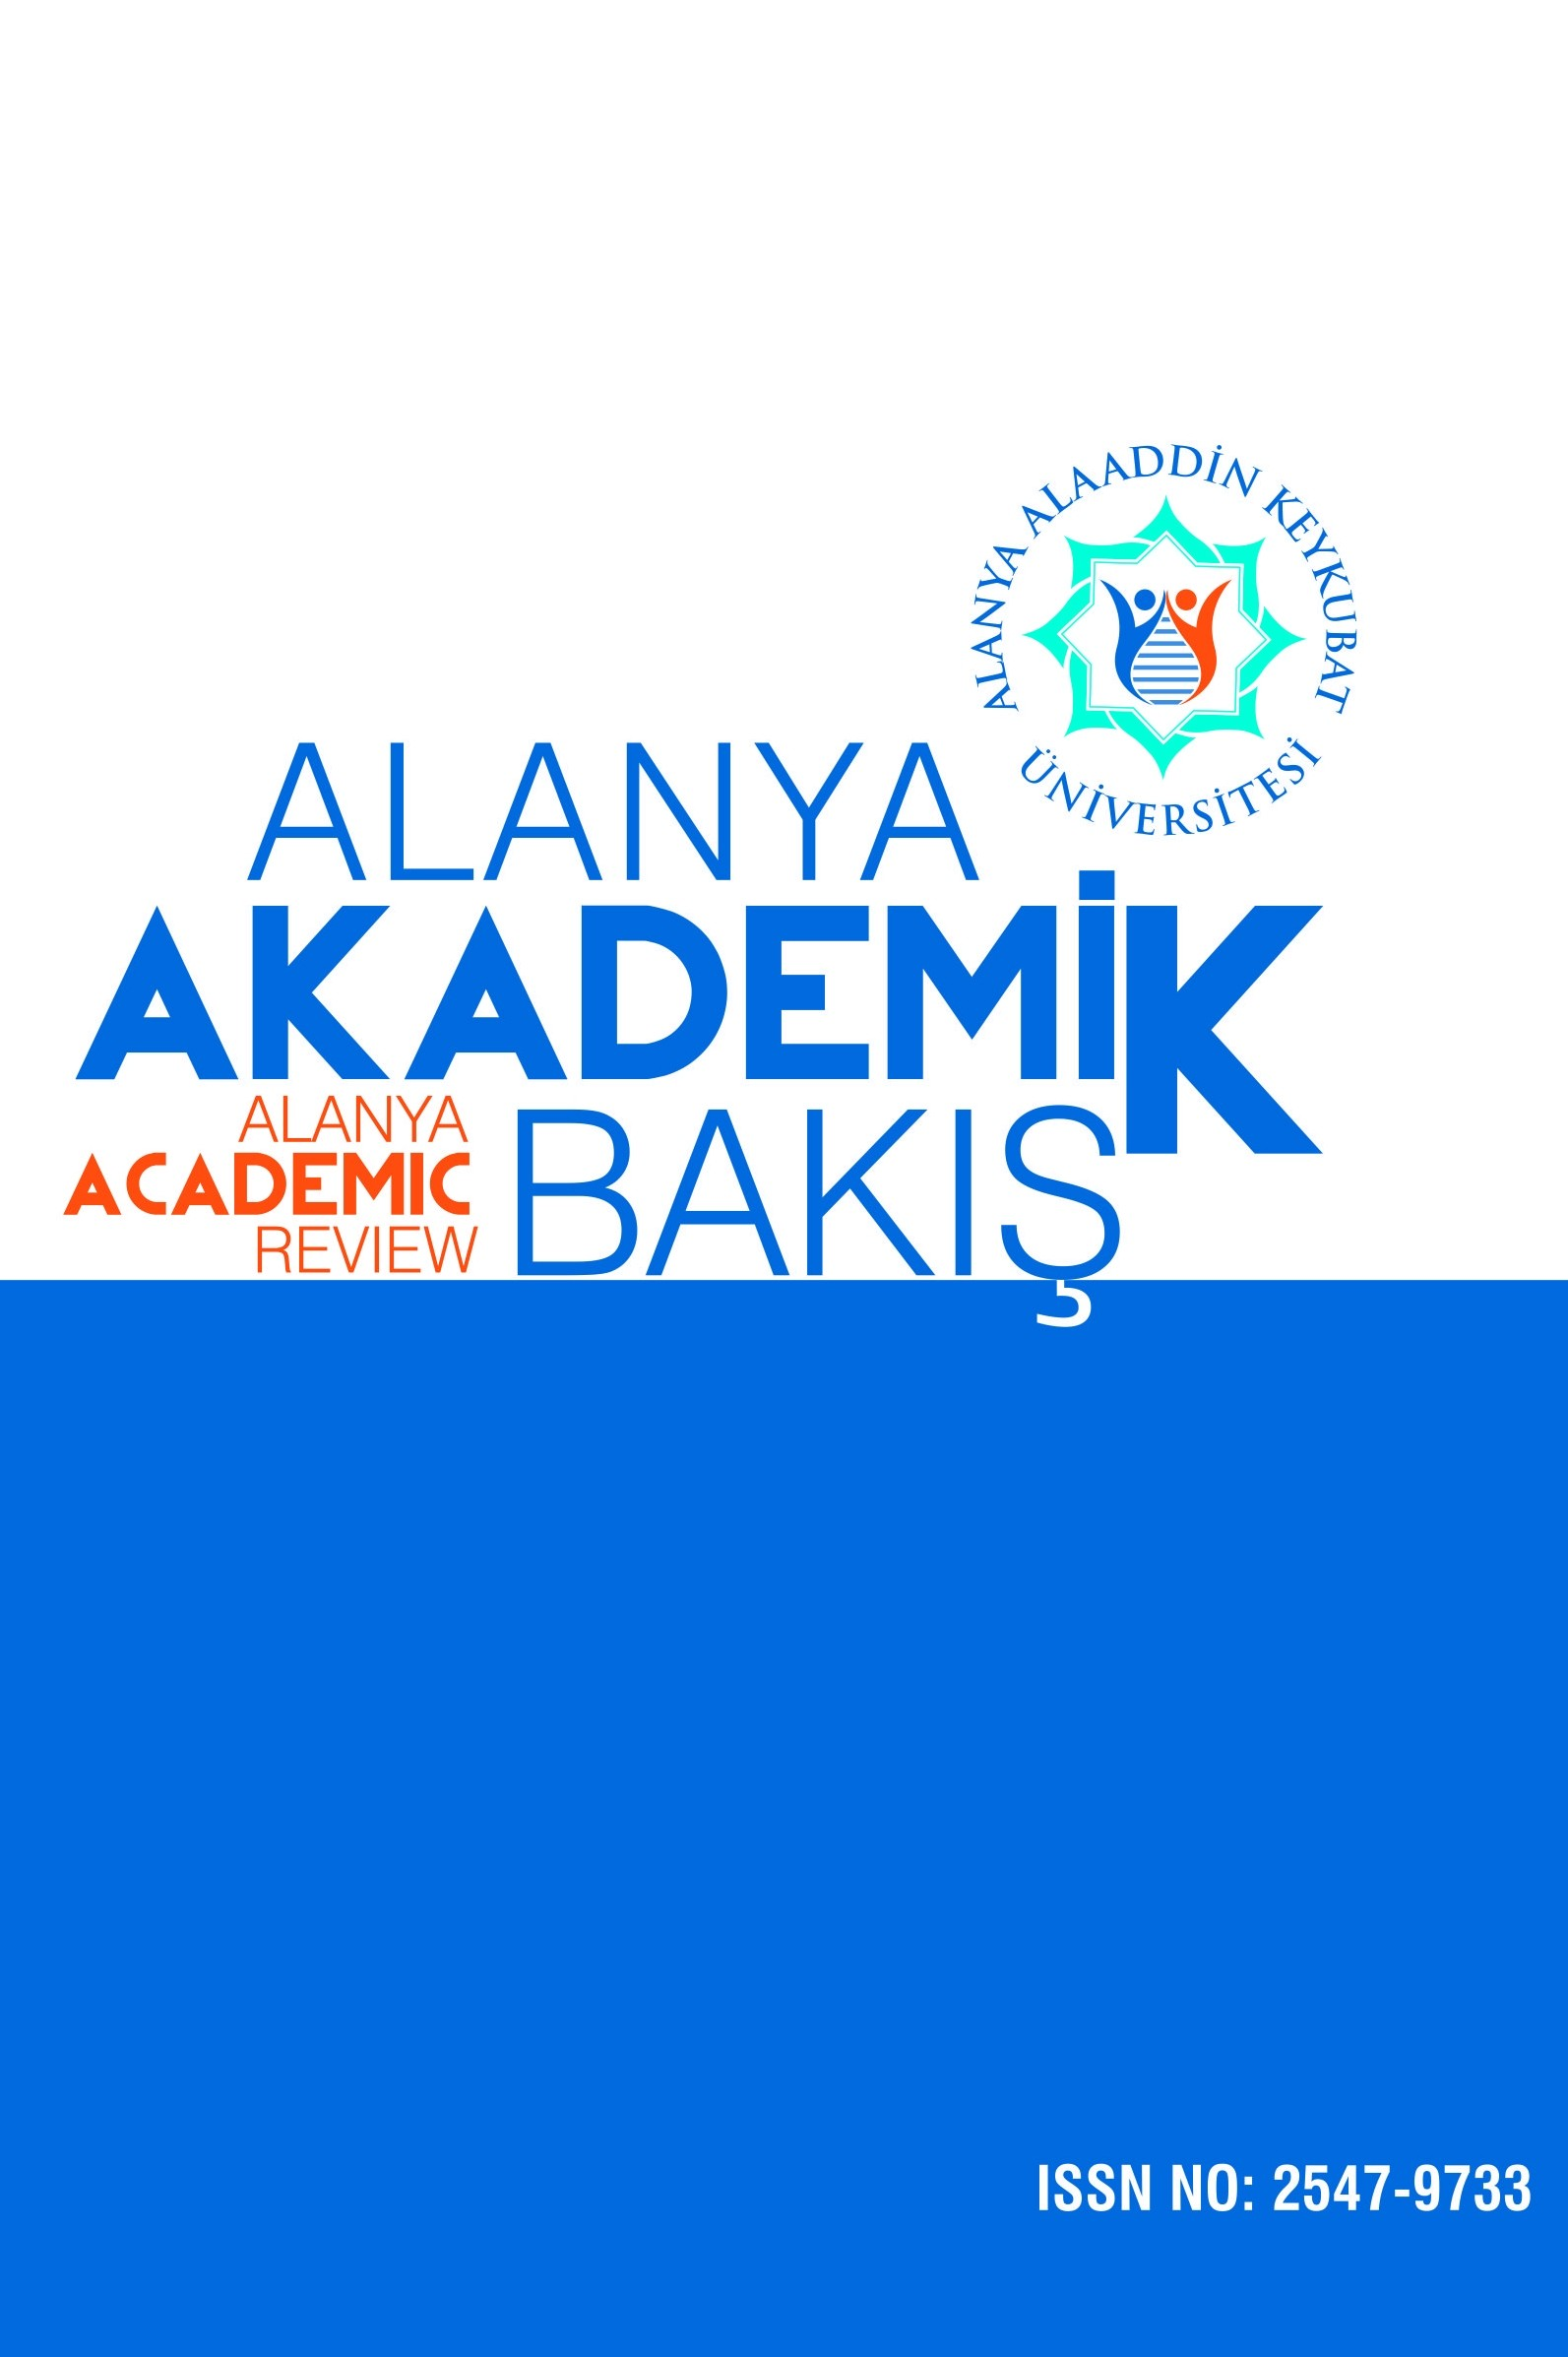 Alanya Academic Review